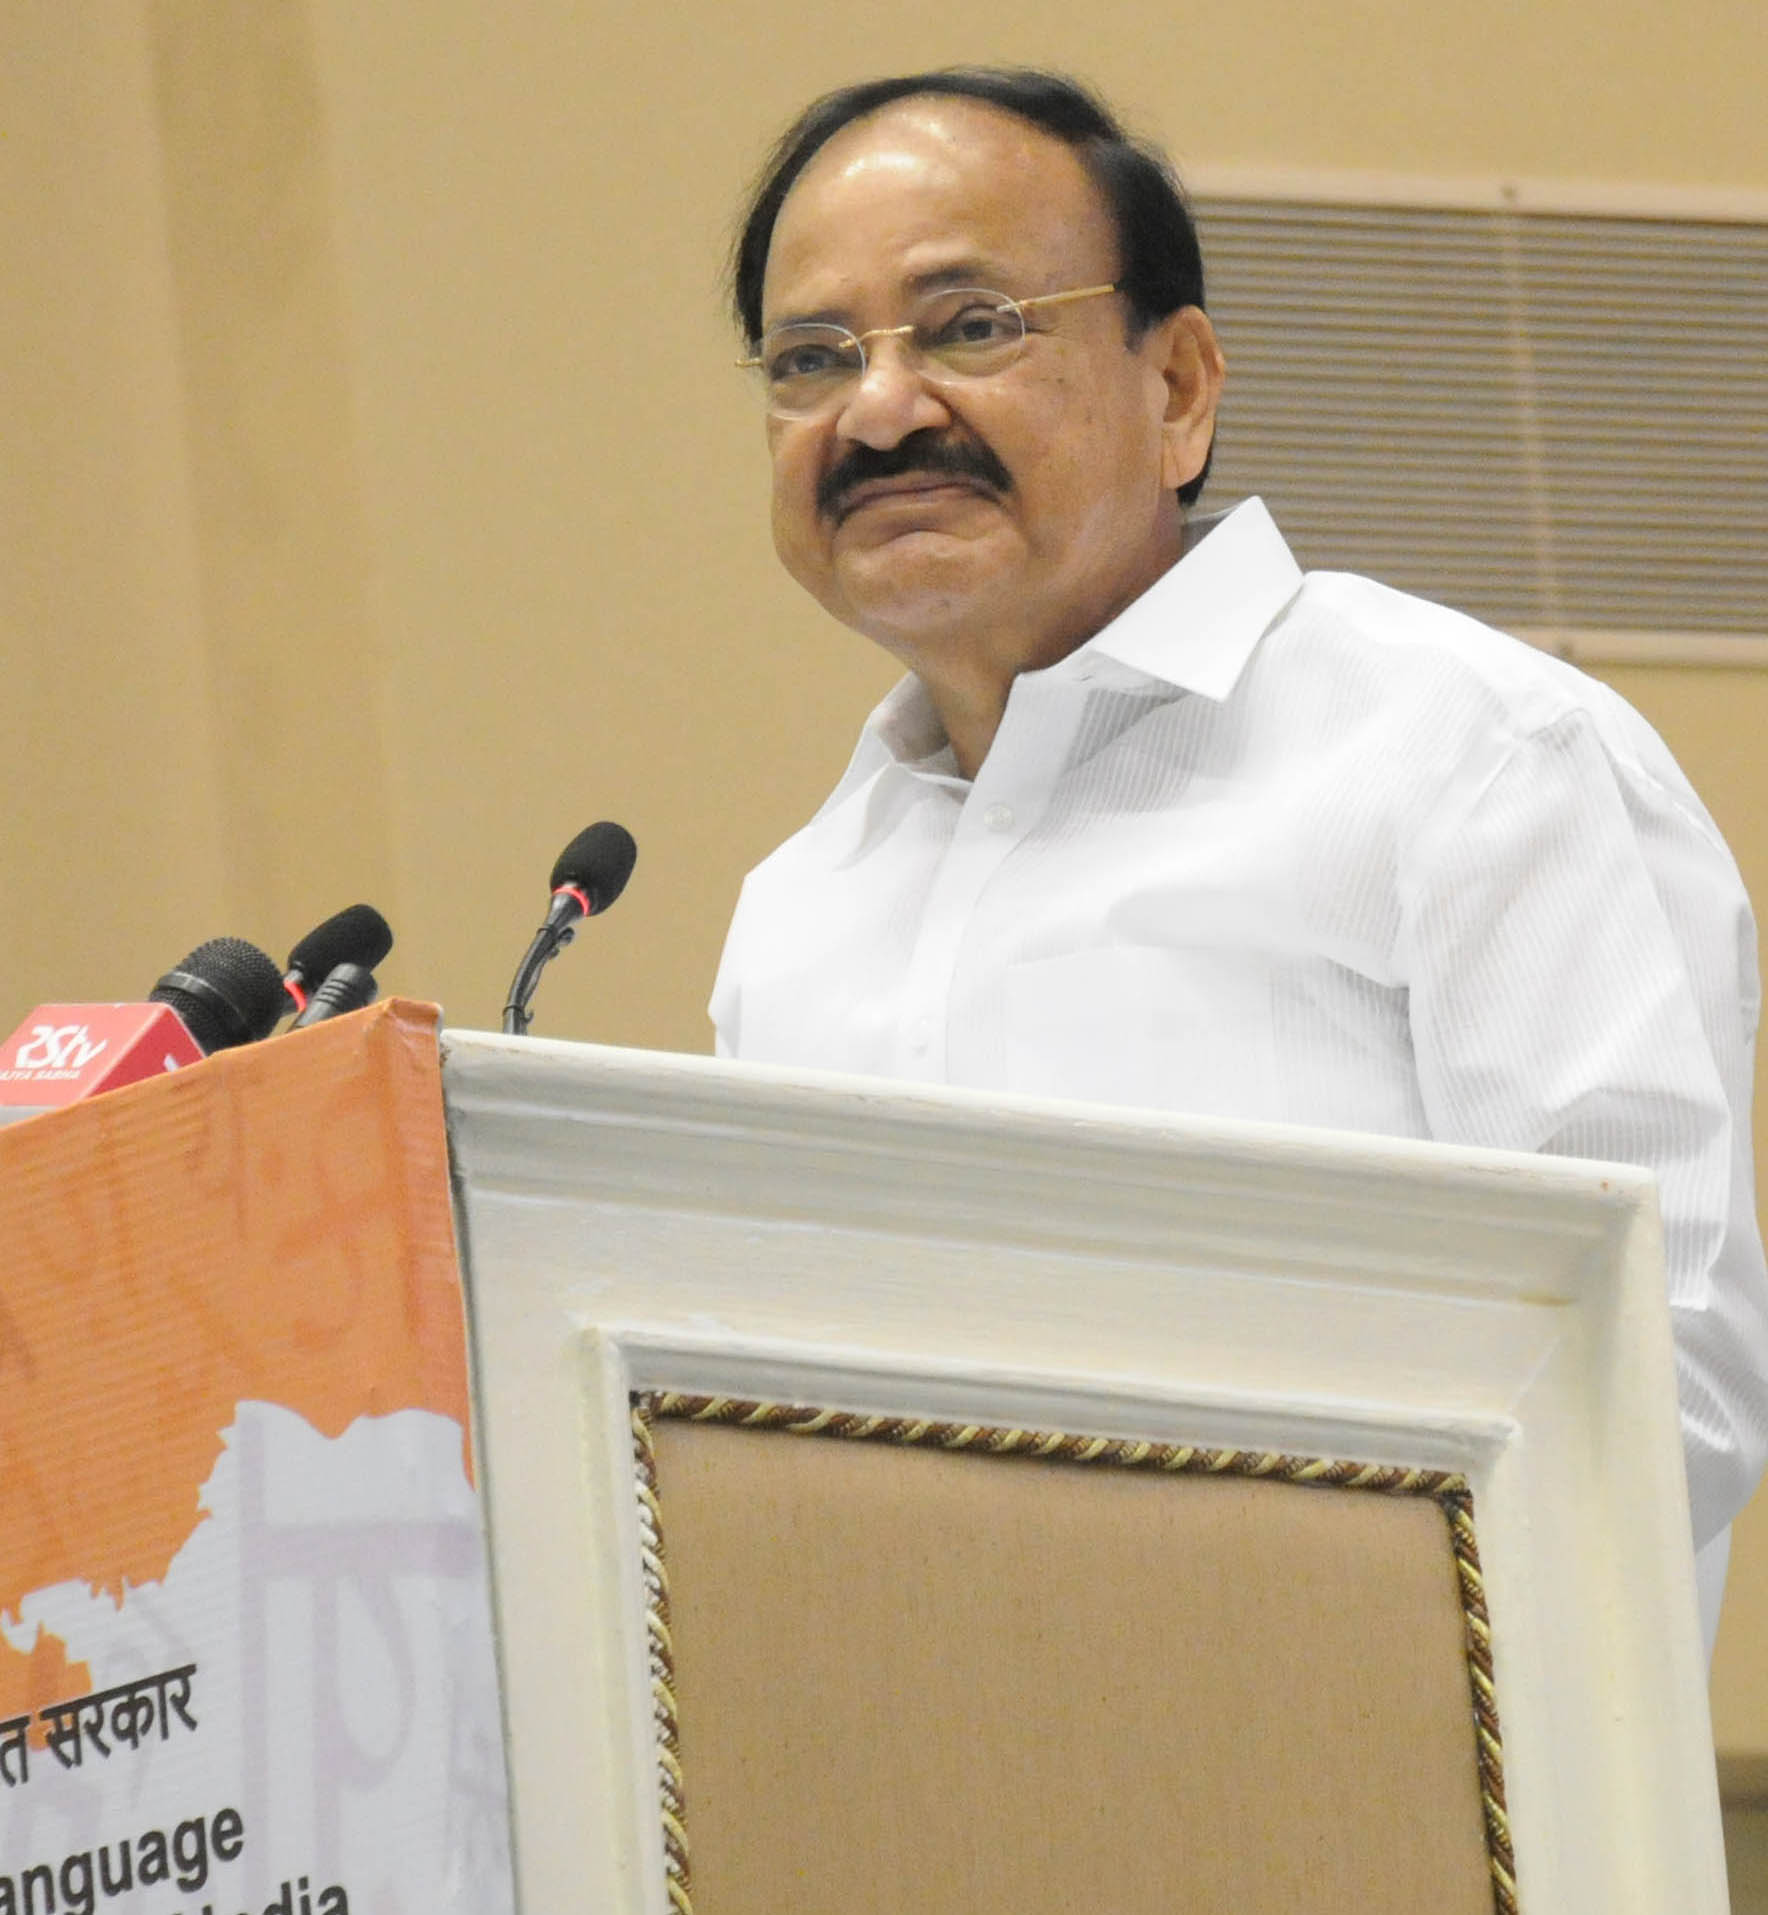 Vice President M Venkaiah Naidu addressing the Hindi Diwas Samaroh 2018, in New Delhi on Friday. (UNI)